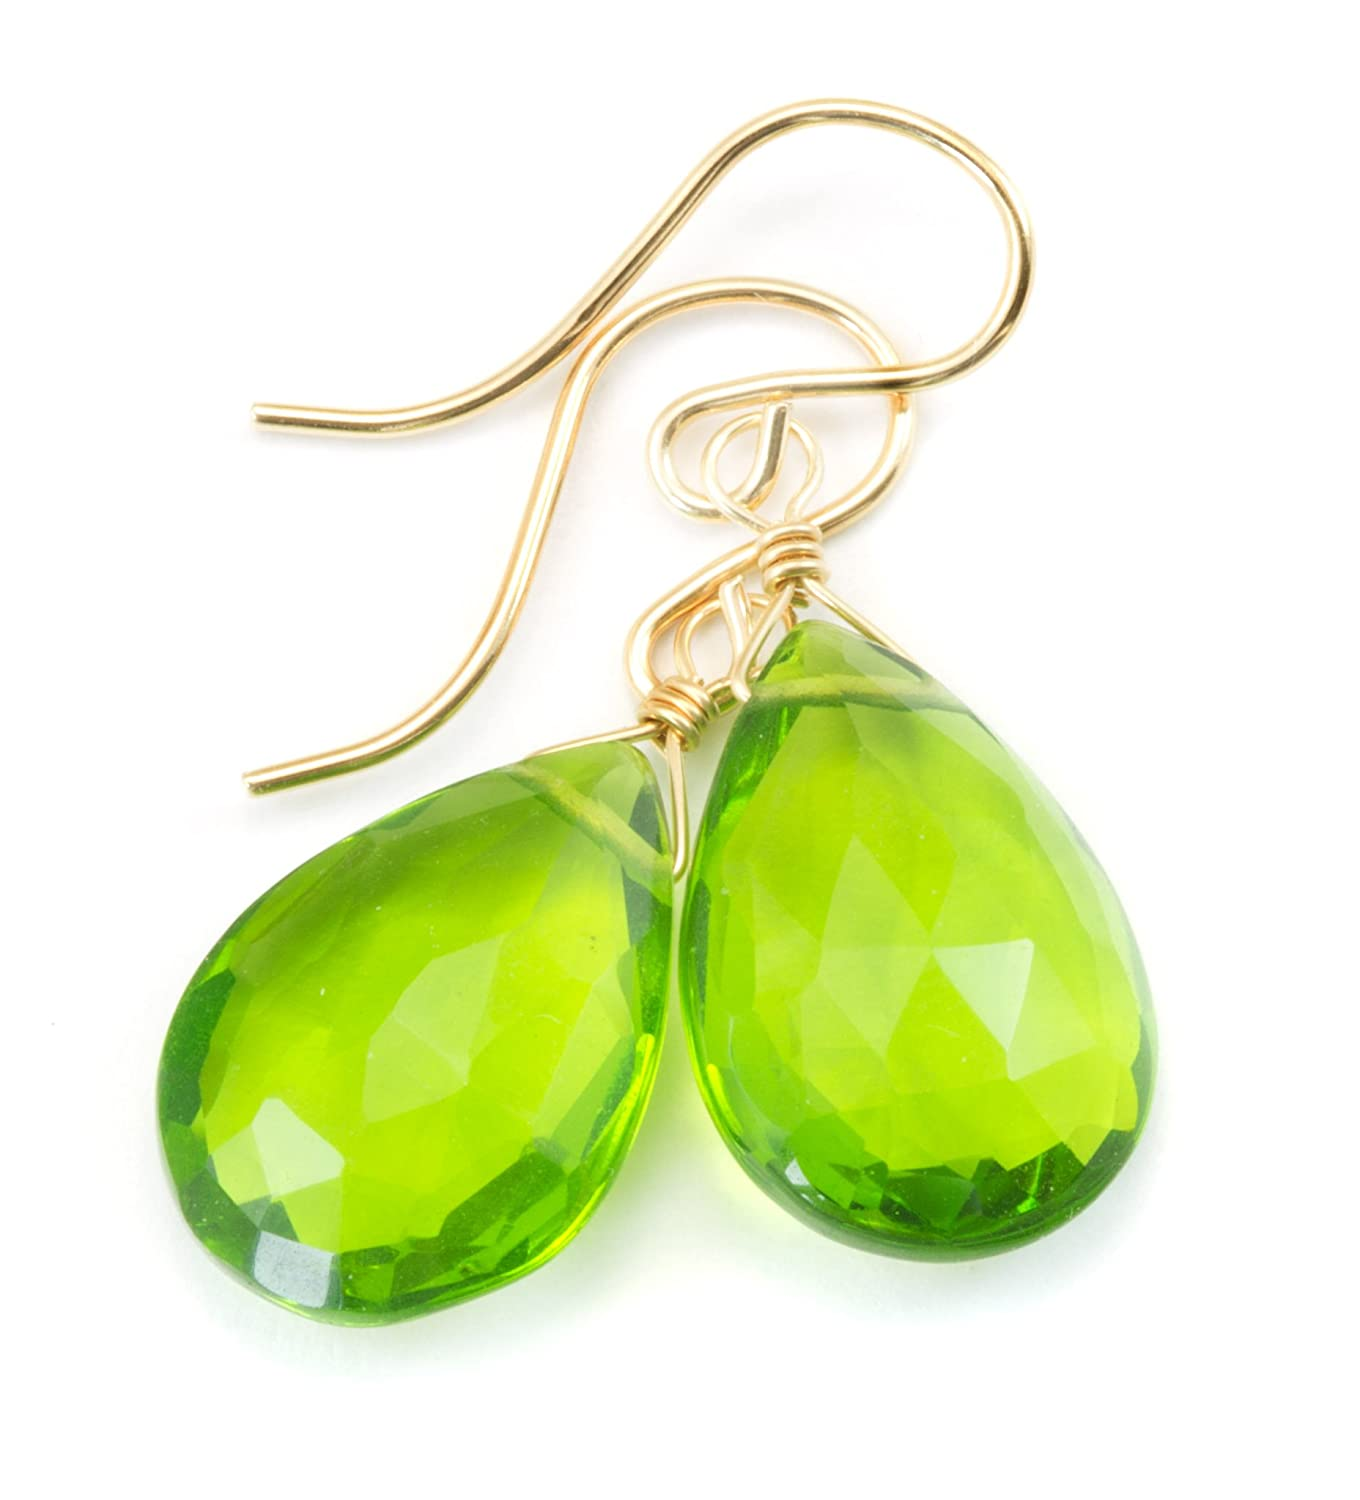 14k Gold Filled Simulated Peridot Green Earrings Teardrop Faceted Pear Dangle Briolettes